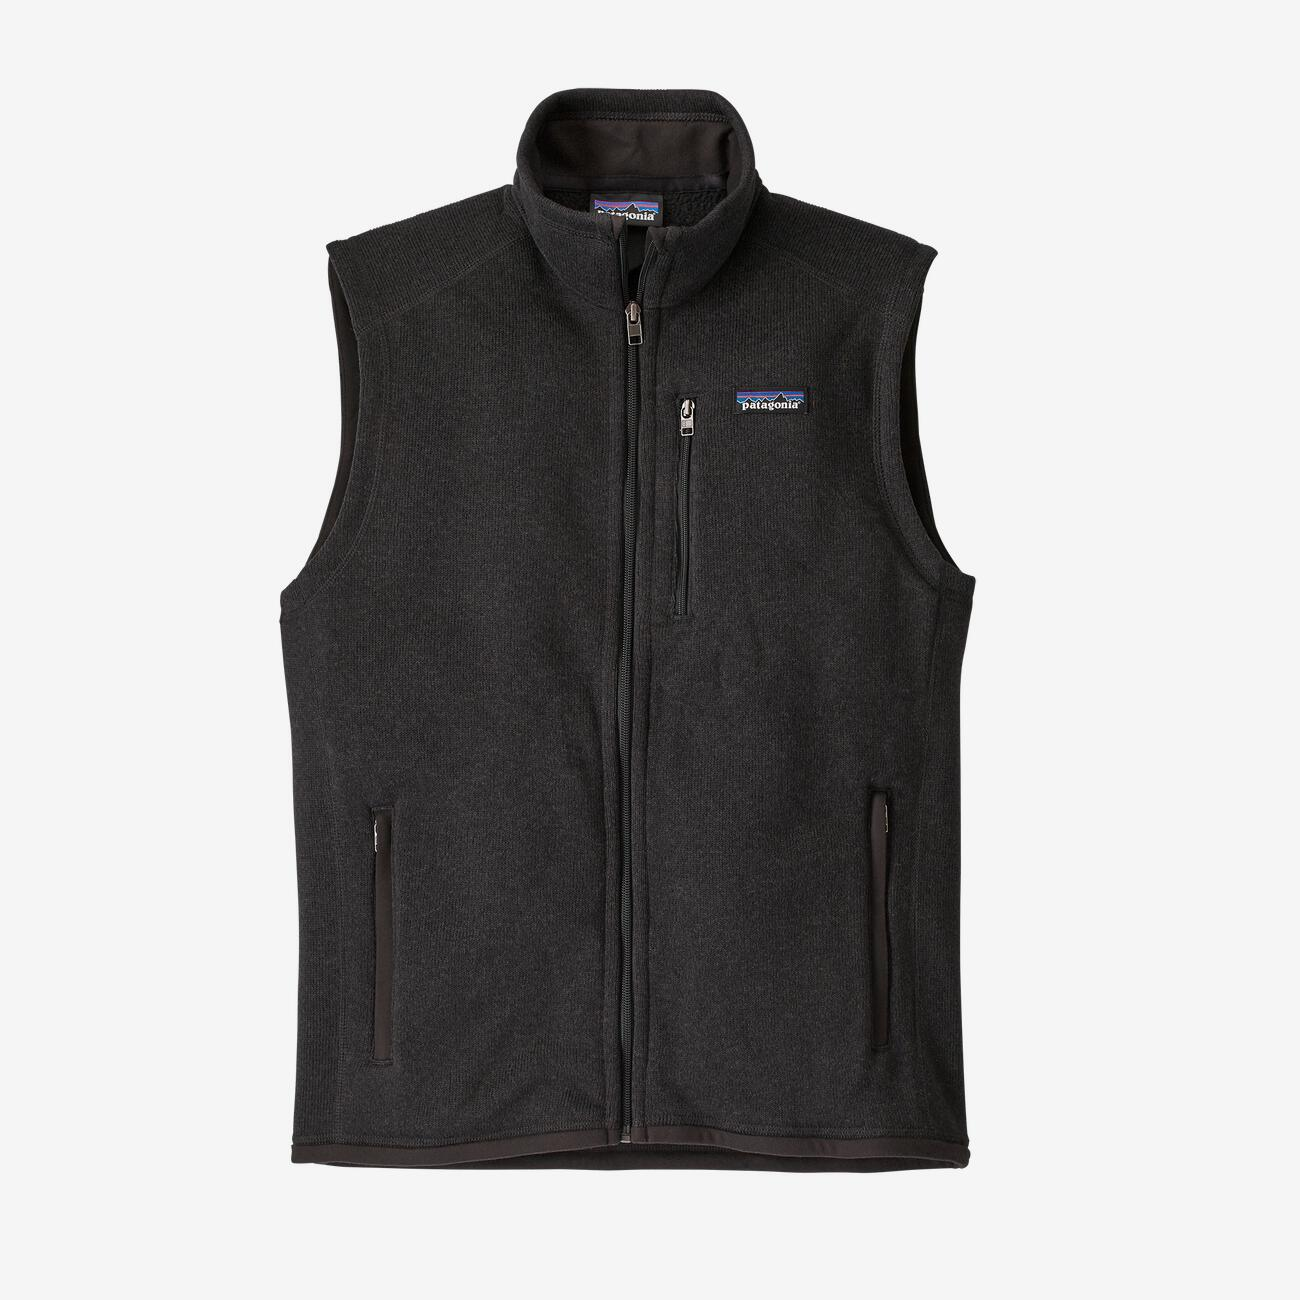 Patagonia Men's Better Sweater Fleece Vest MEN - Clothing - Outerwear - Vests Patagonia Teskeys